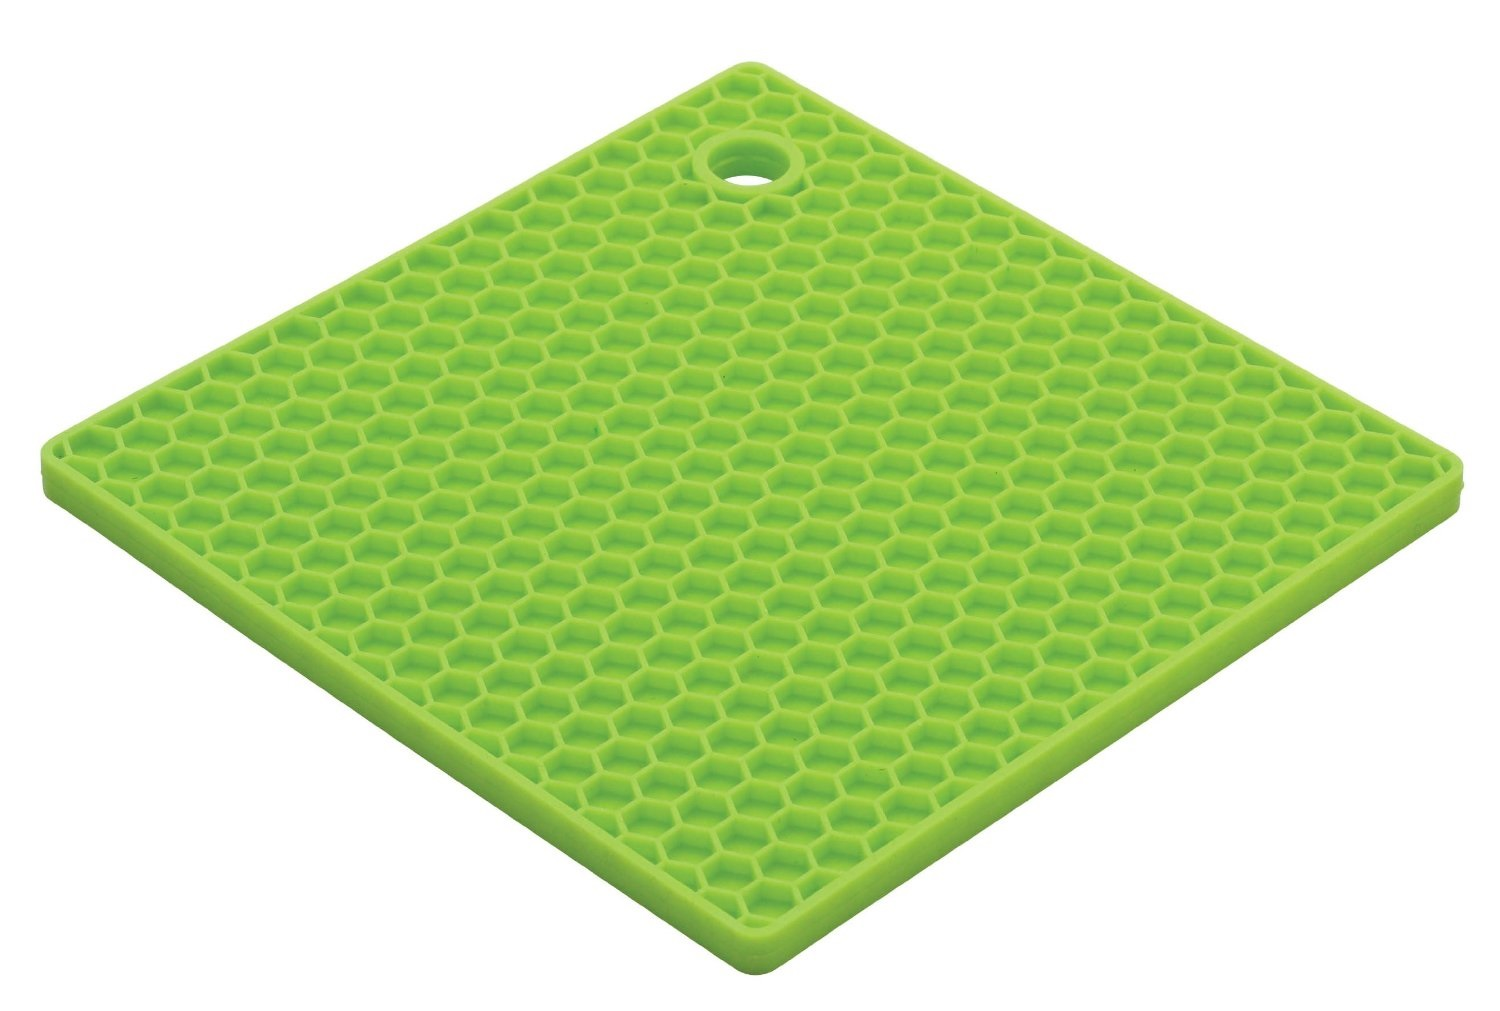 Lime Green Square Silicone Potholder